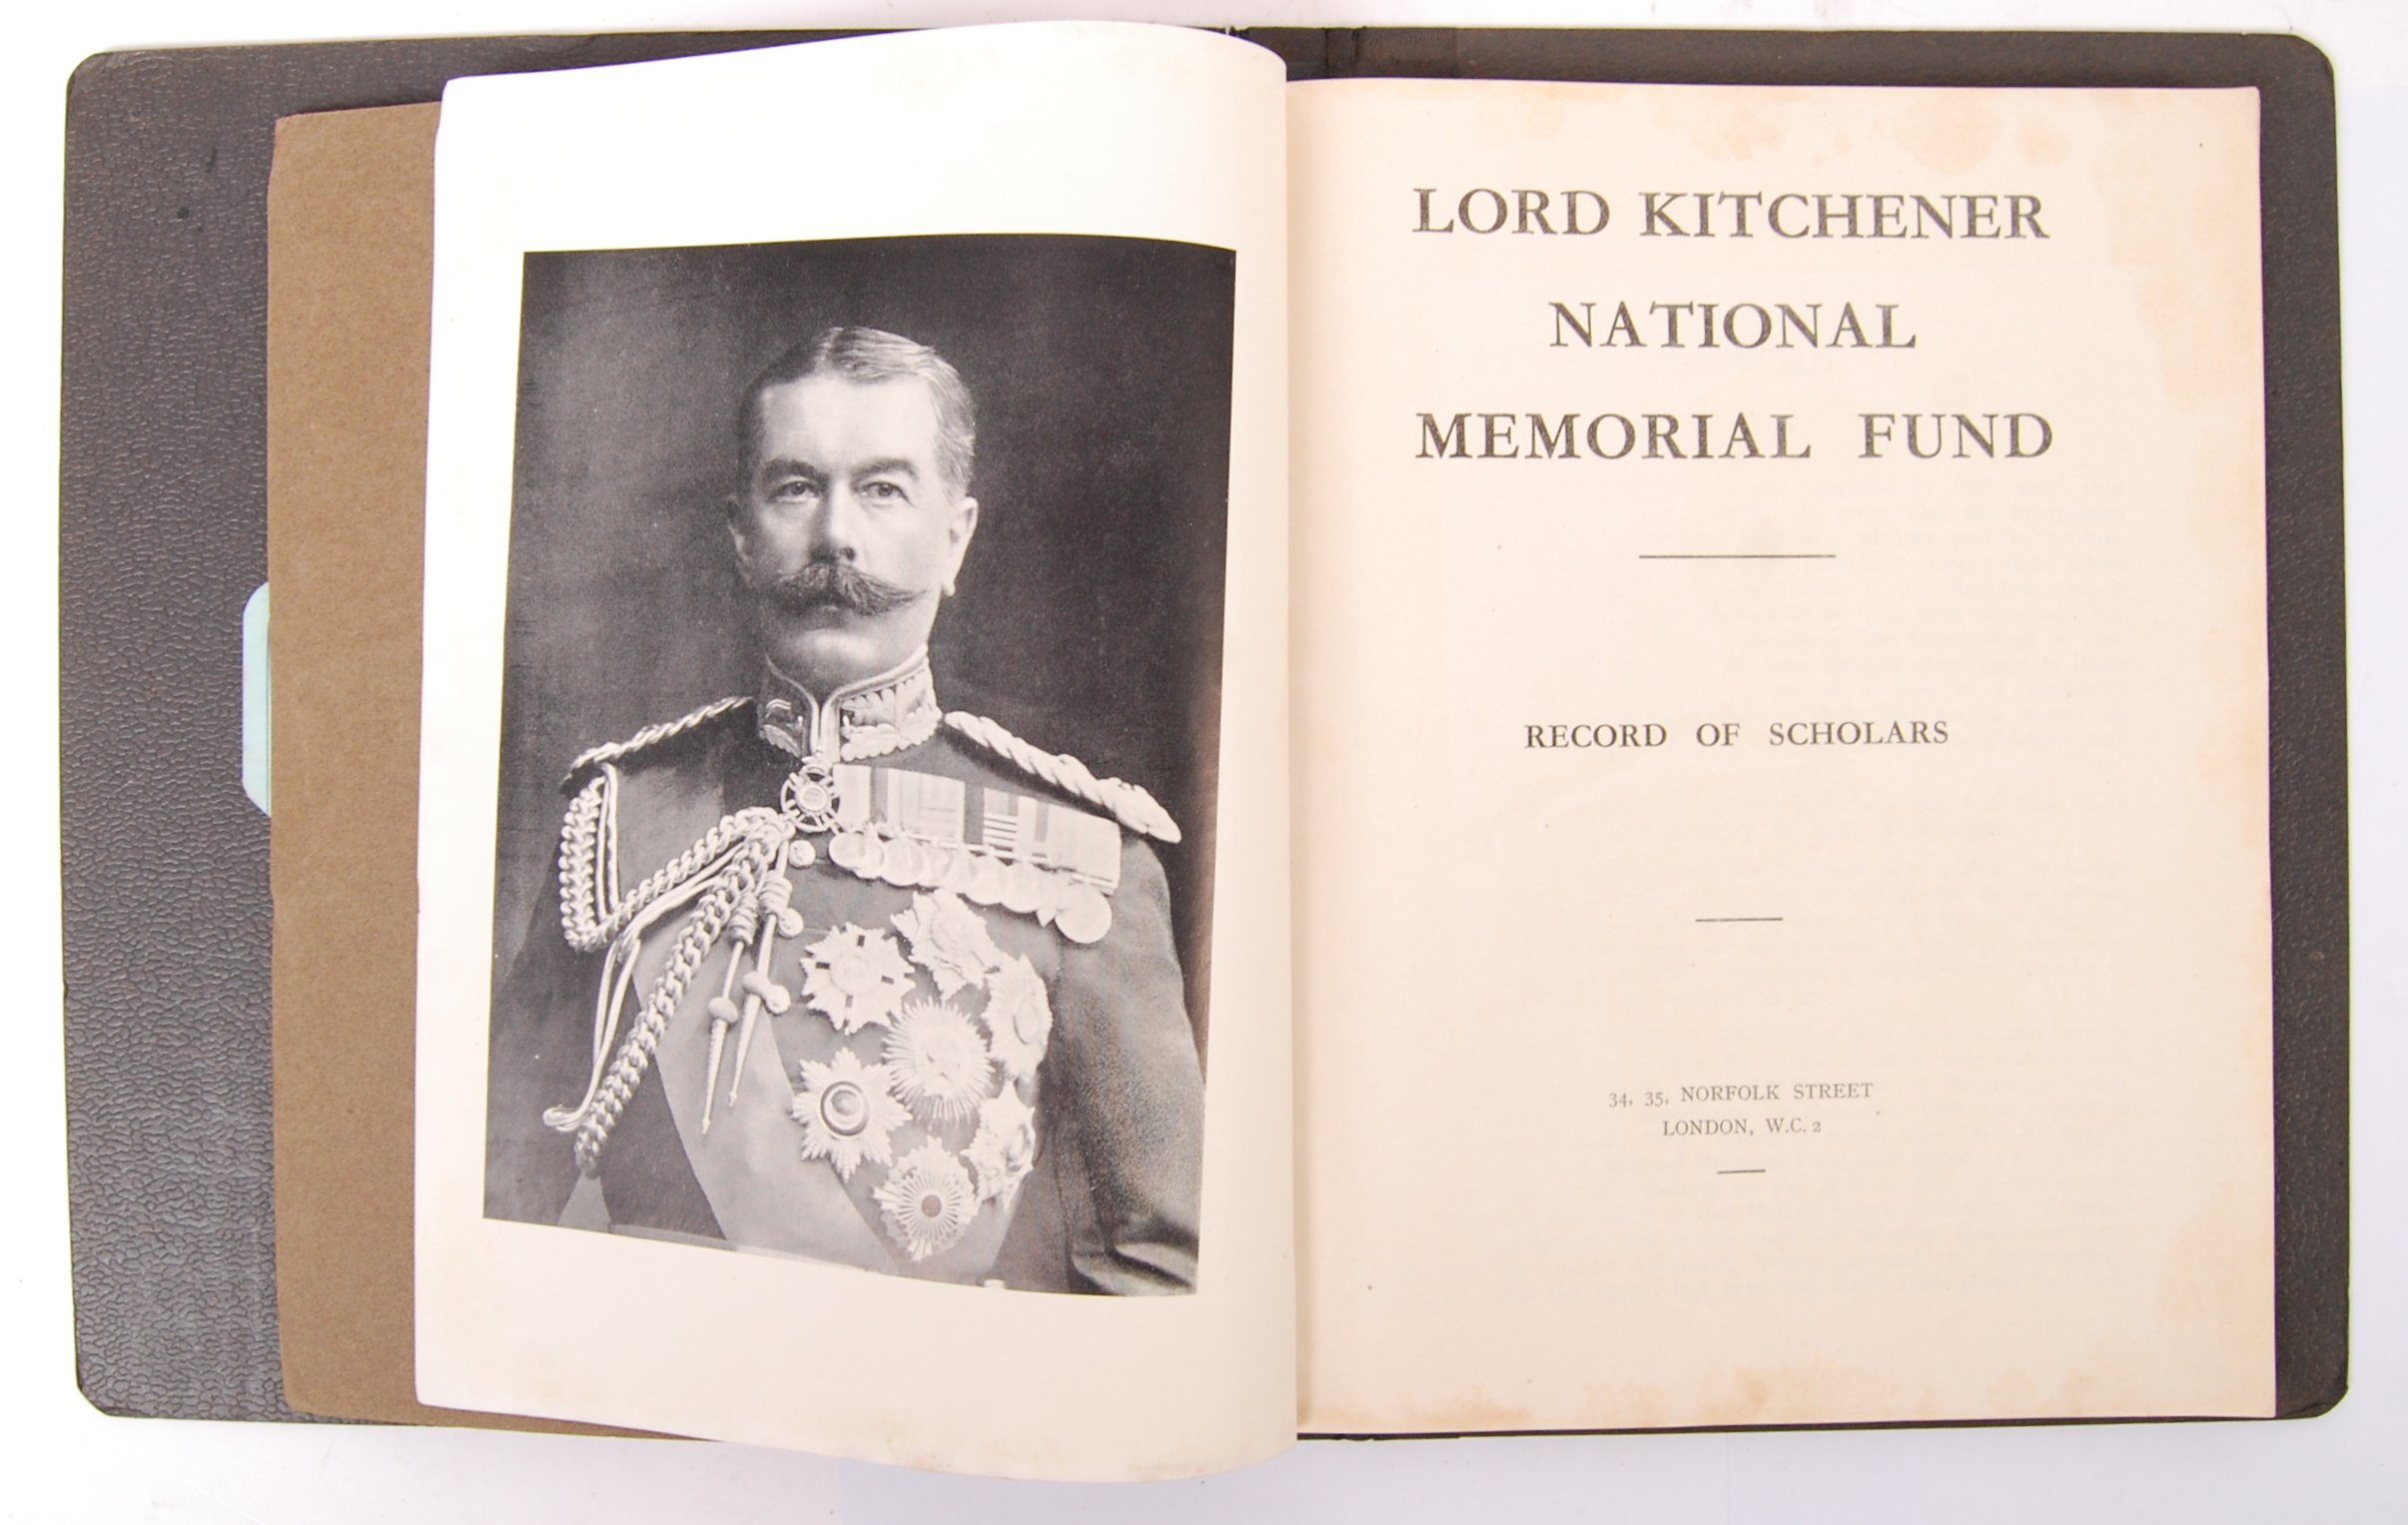 Lot 313 - LORD KITCHENER NATIONAL MEMORIAL FUND RECORD OF SCHOLARS